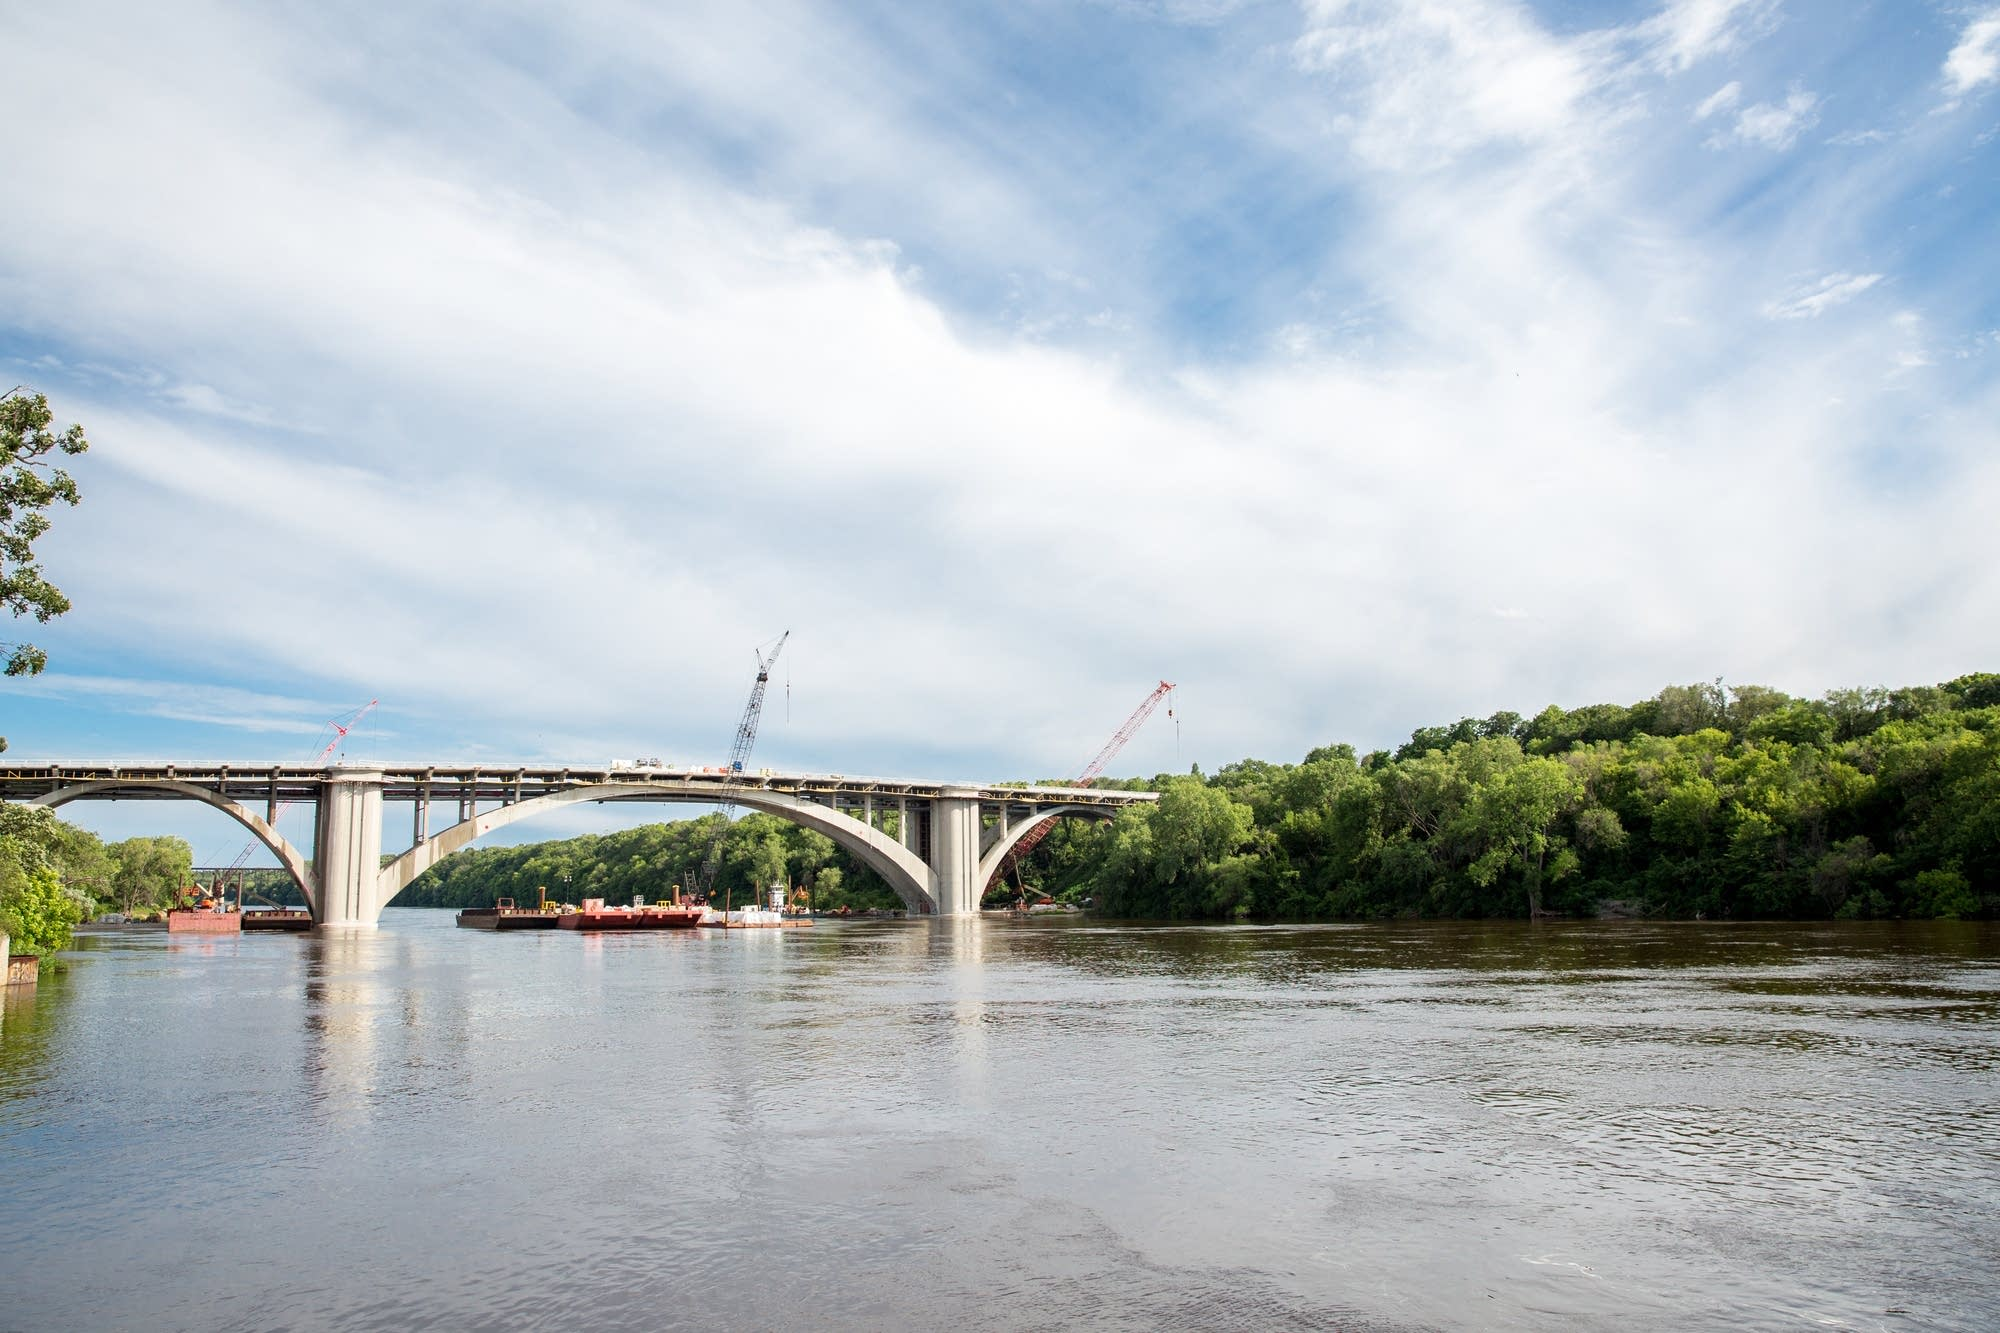 The Franklin Ave. Bridge as seen from the shore